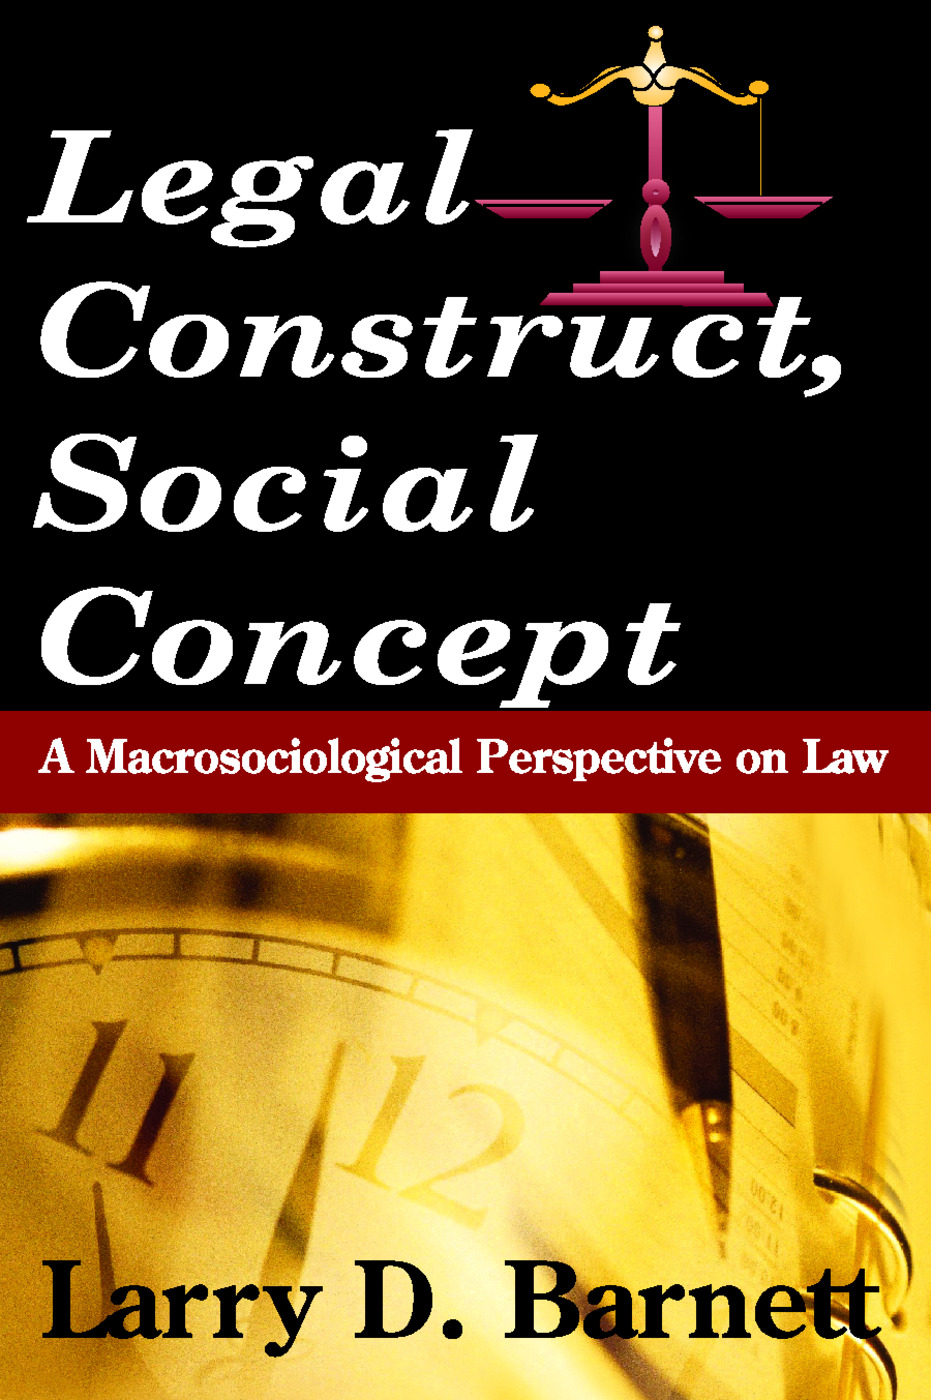 Legal Construct, Social Concept: A Macrosociological Perspective on Law book cover